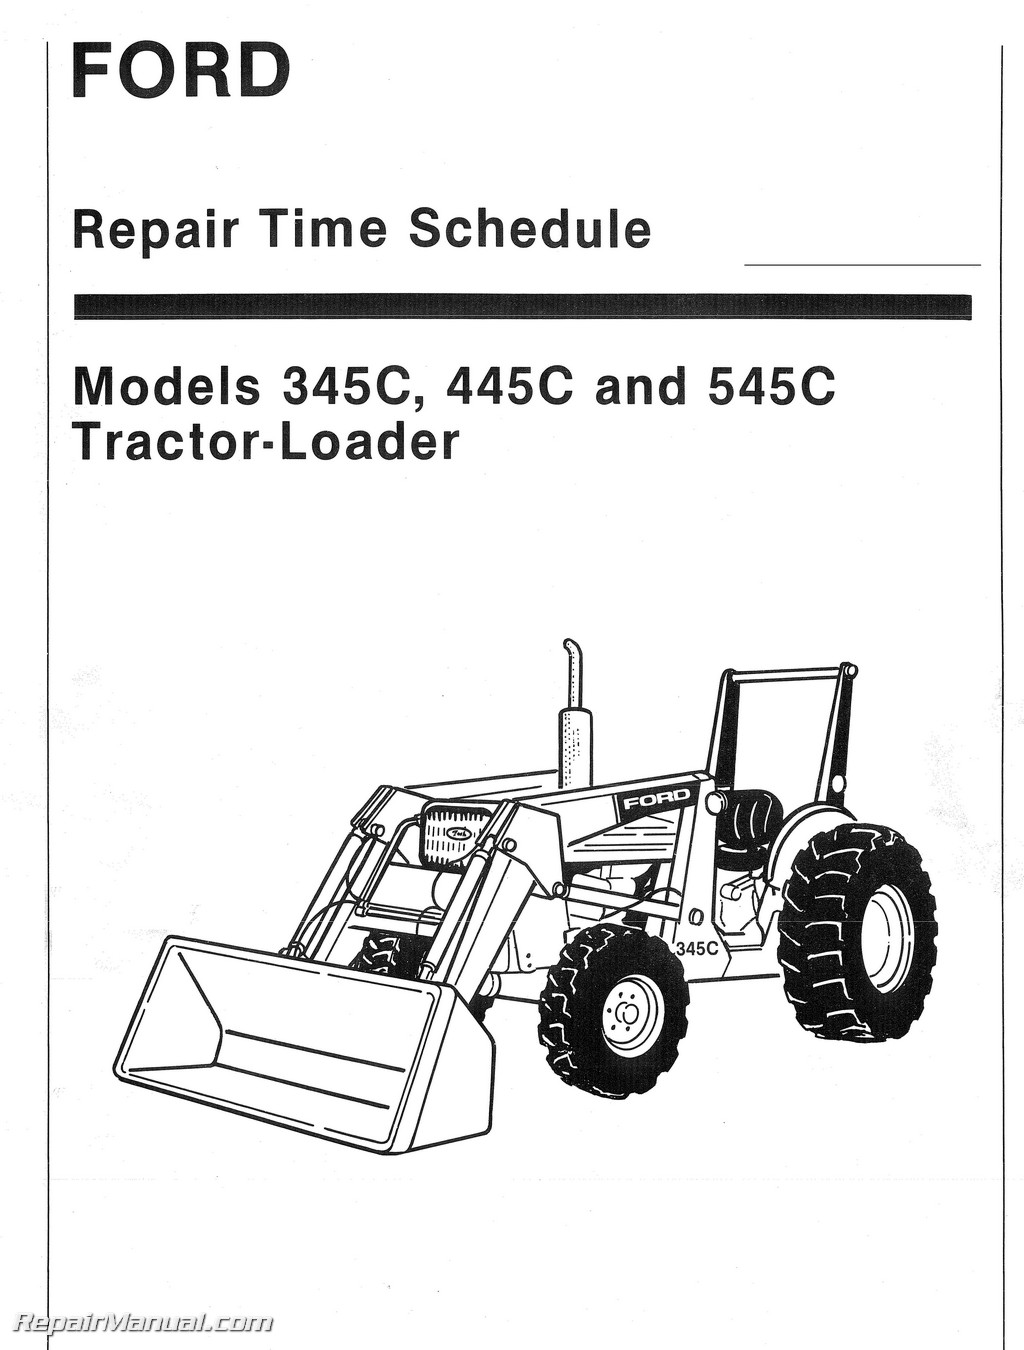 Ford 345c 445c 545c Tractor Loader Repair Labor Time Schedule Manual